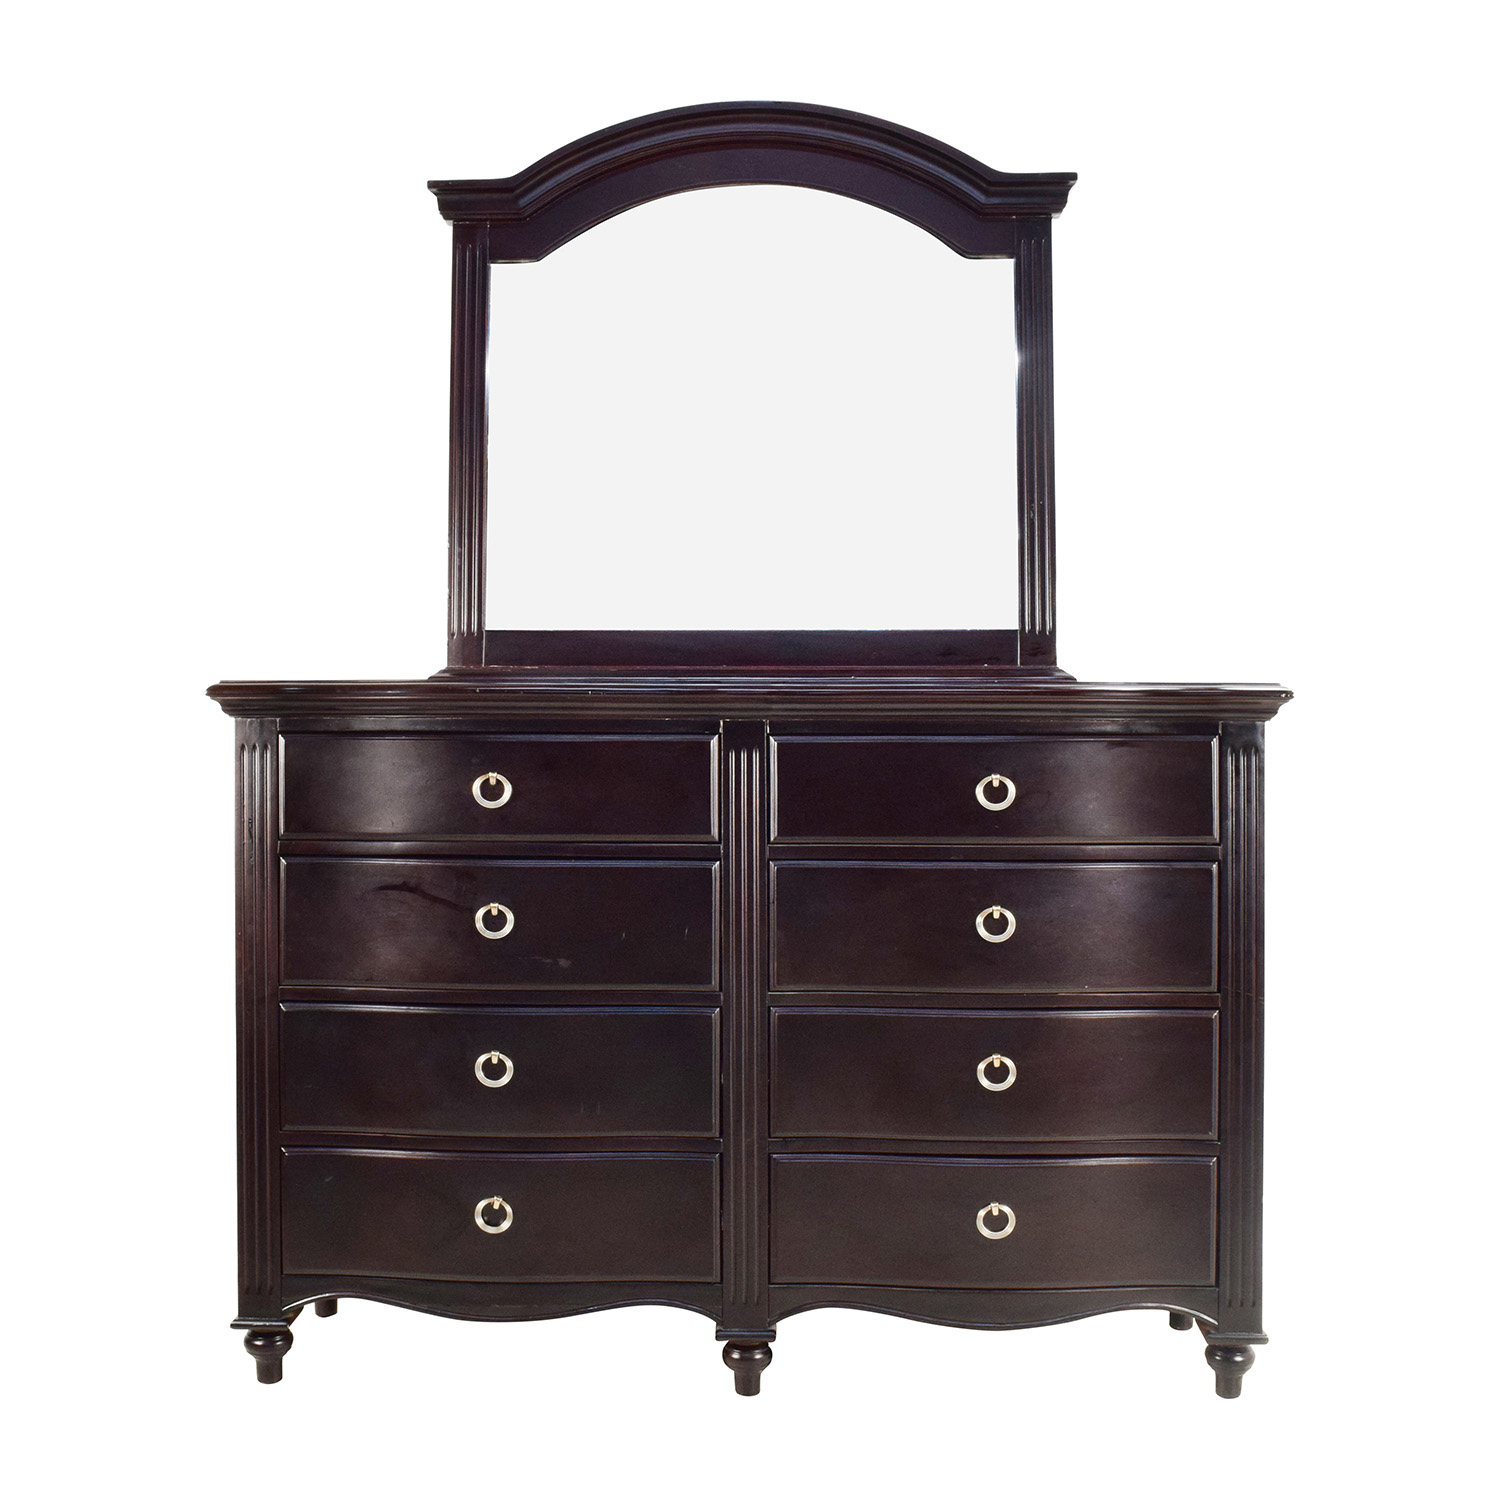 69 mahogany 10 drawer dresser storage 89950